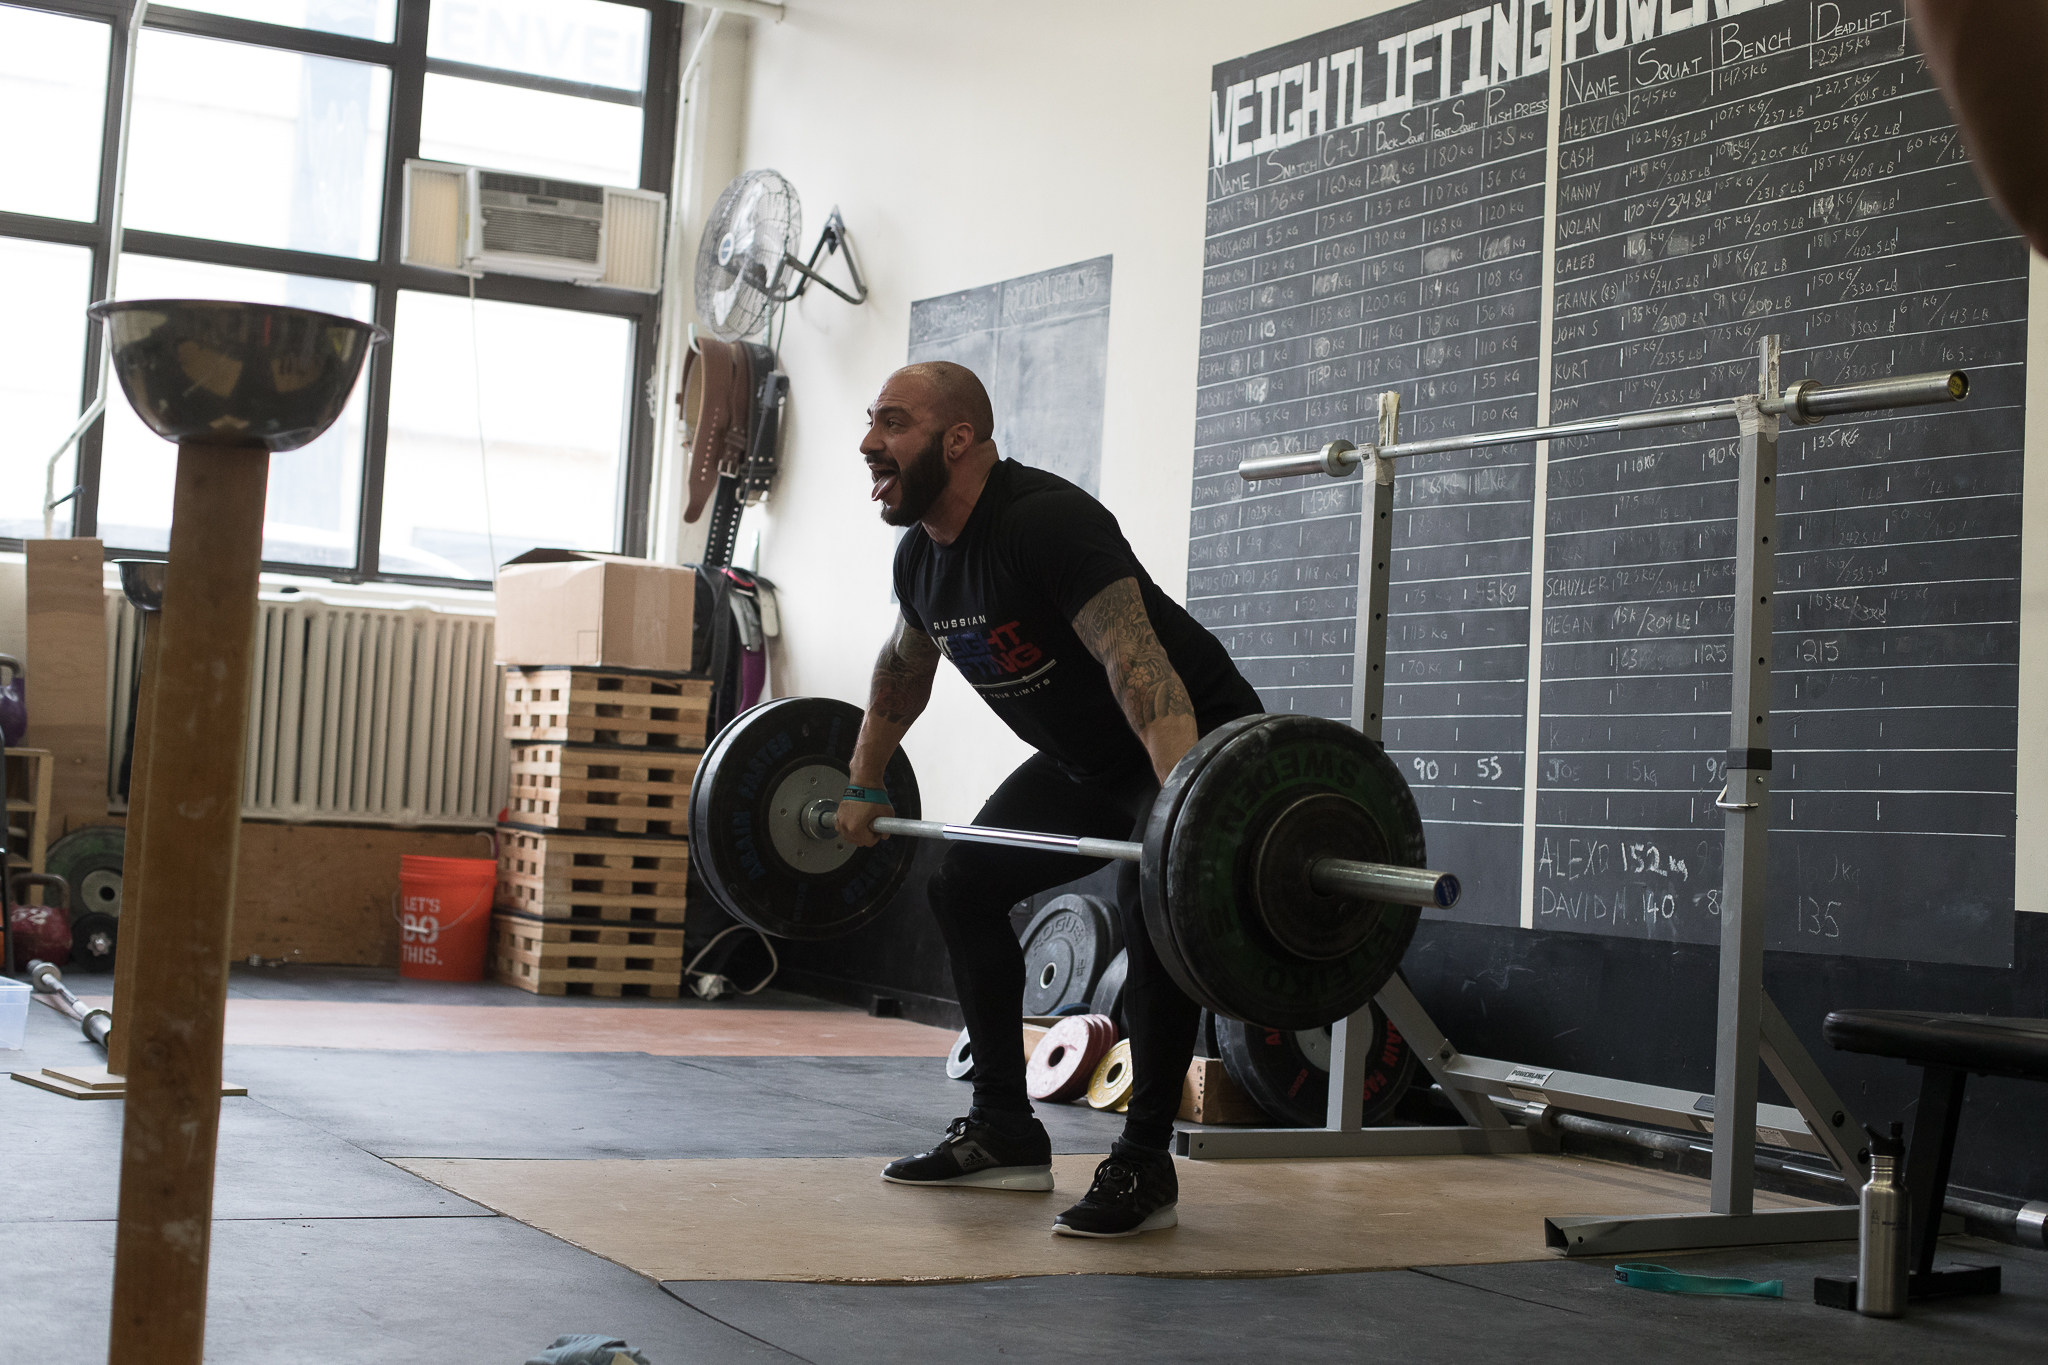 james-wright-weightlifting-coach-14.jpg